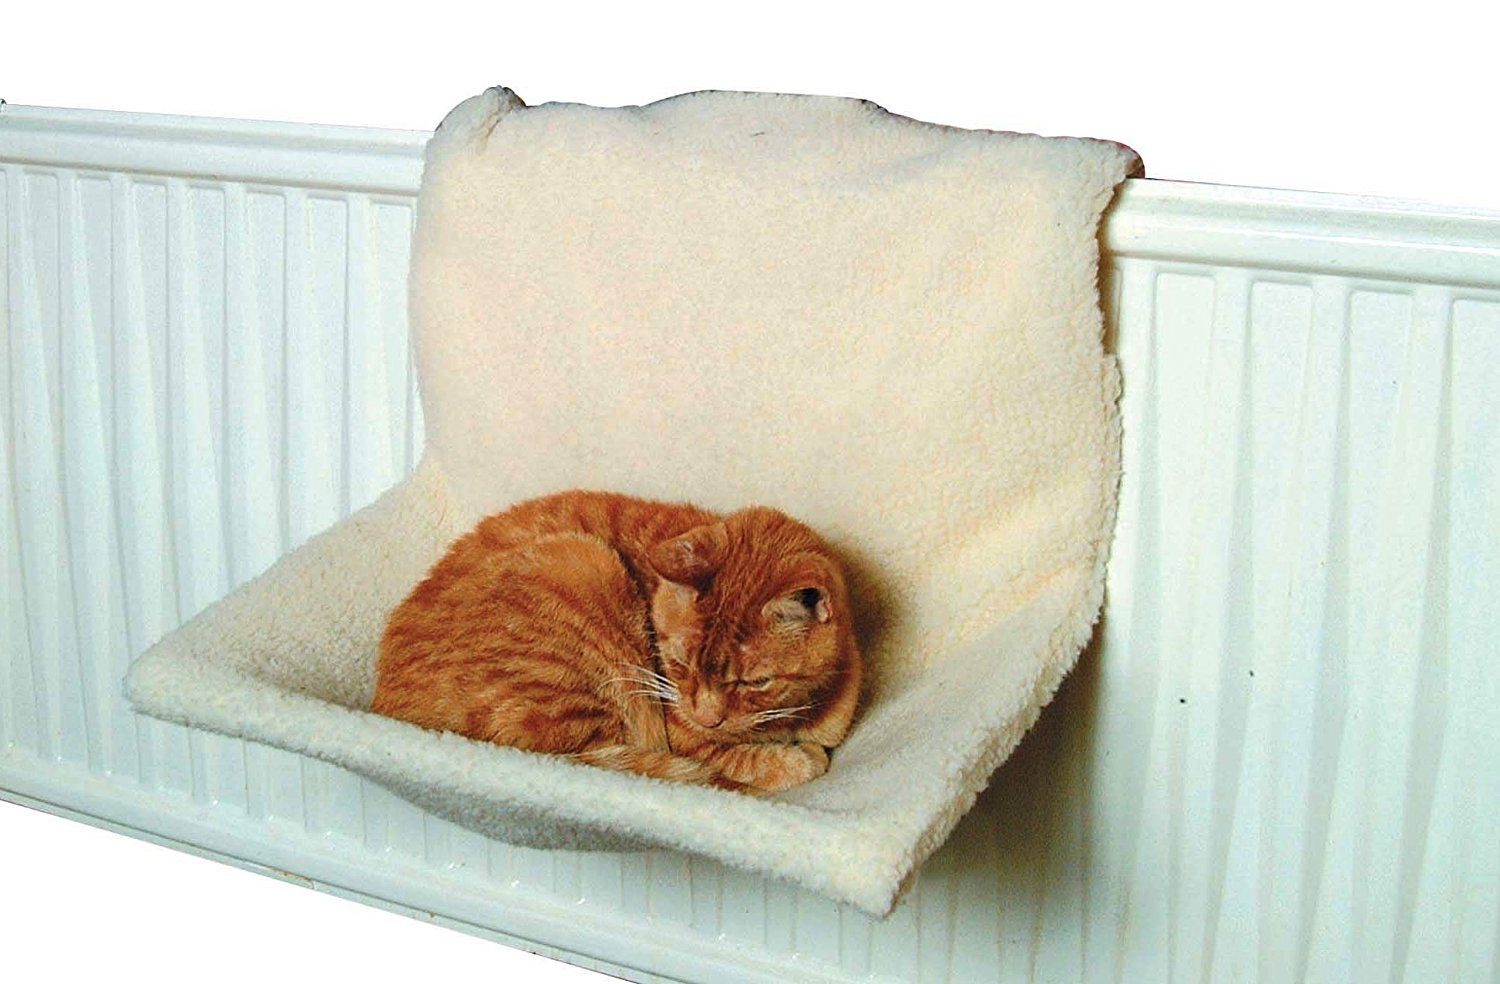 the canac cats cradle  u2013 a warm and snug cat radiator hammock canac cats cradle   cat radiator hammock for toasty kitties   cool      rh   coolstuffforcats